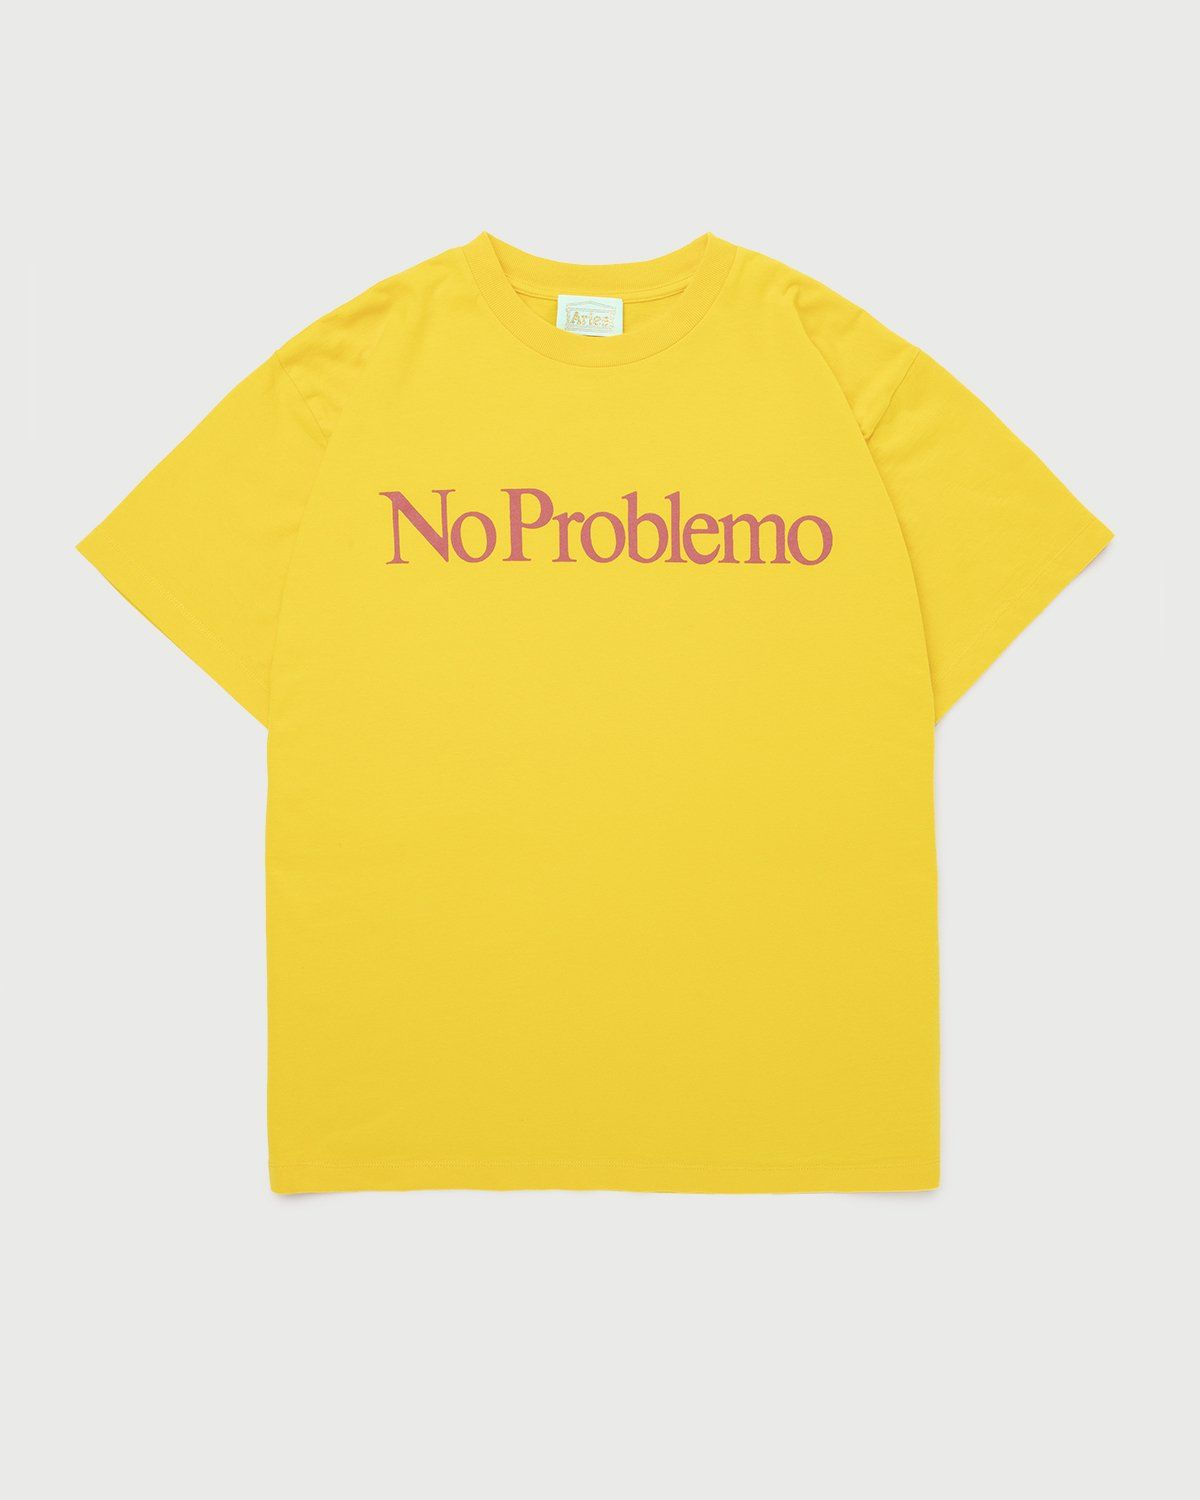 Aries - No Problemo Tee Yellow - Image 1